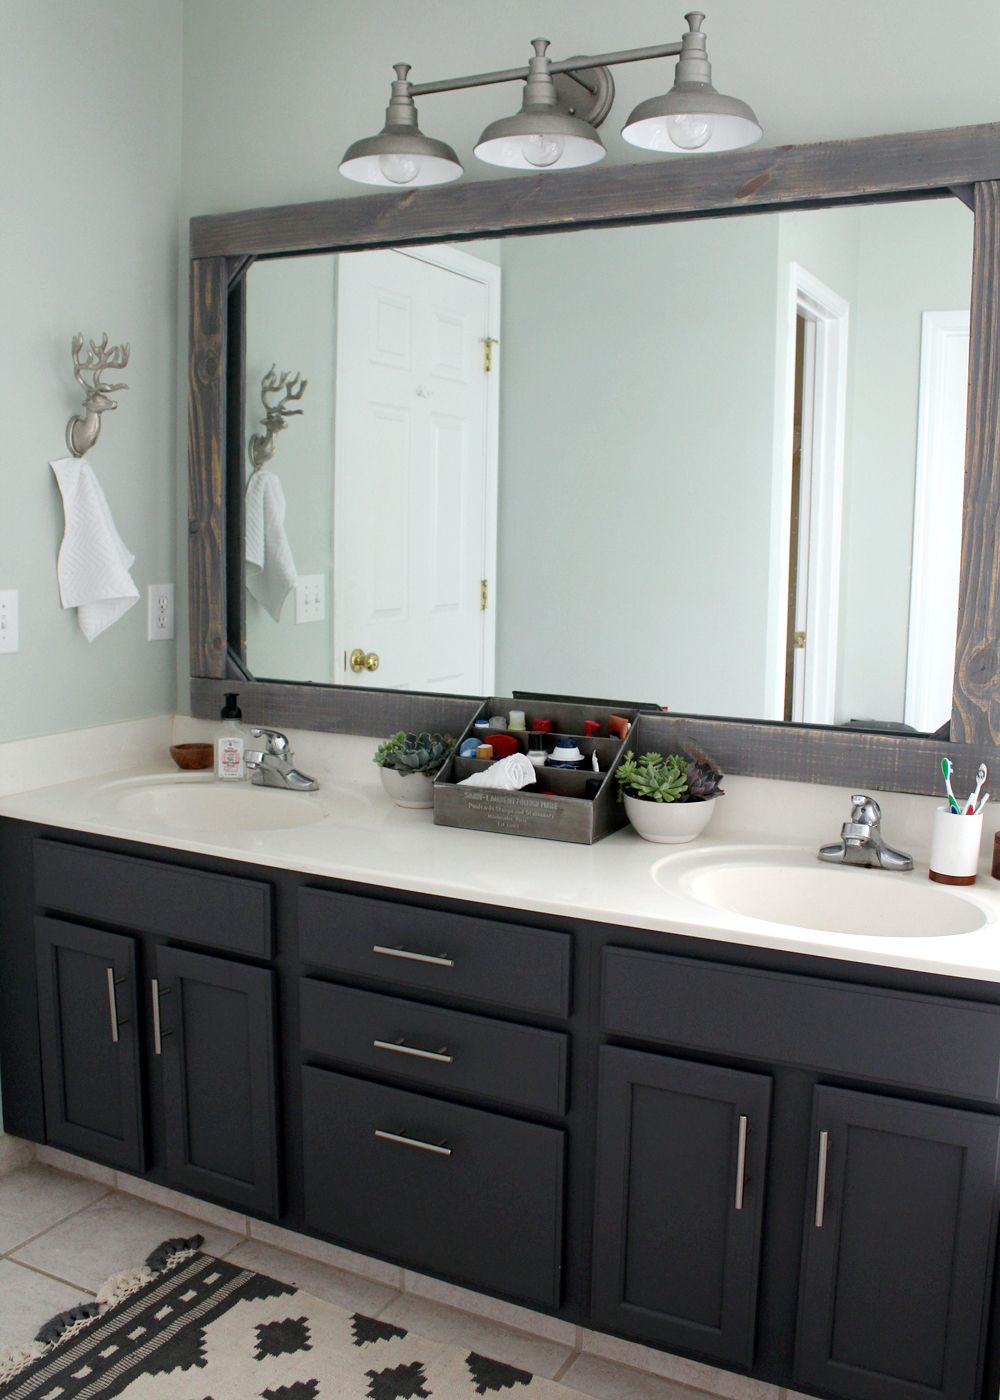 300 master bathroom remodel bloggers best diy ideas pinterest